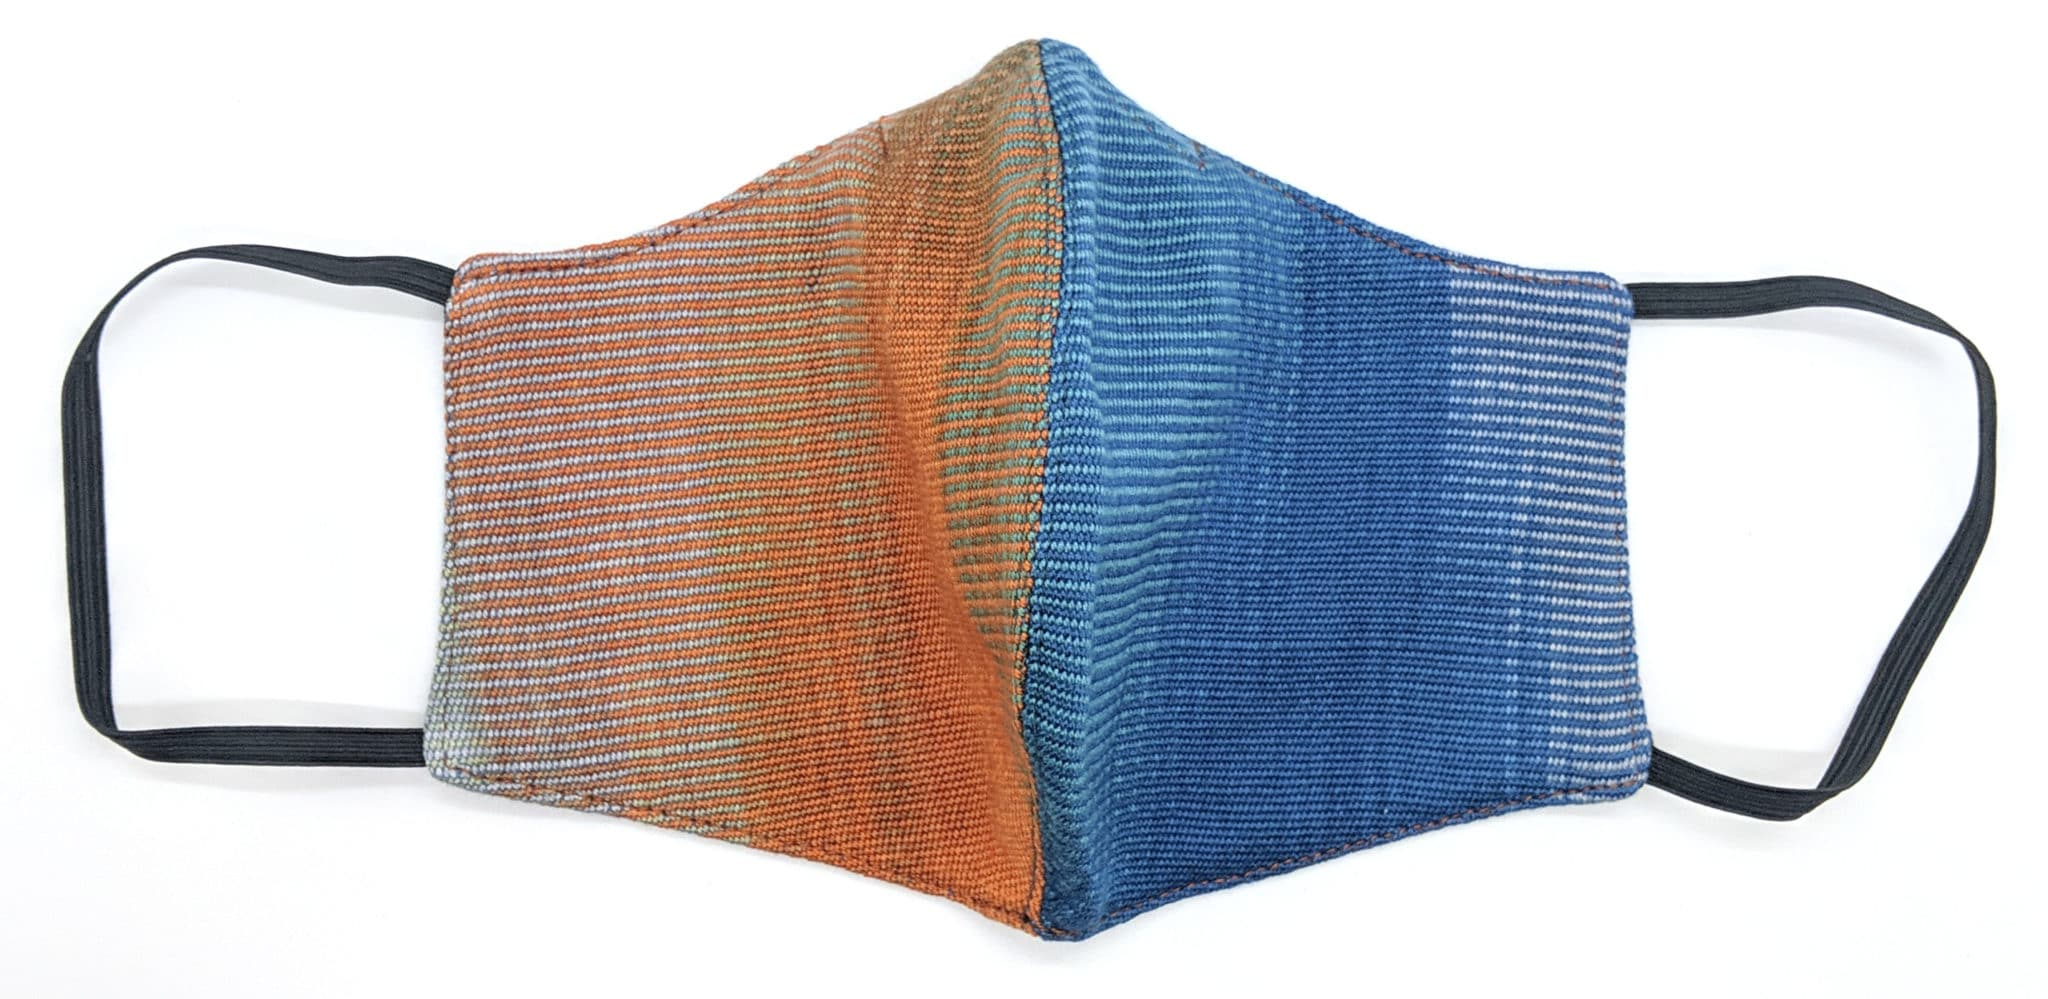 Handwoven Lightweight Bamboo Face Mask with Metal at Bridge of Nose - Blue, Orange, Gray